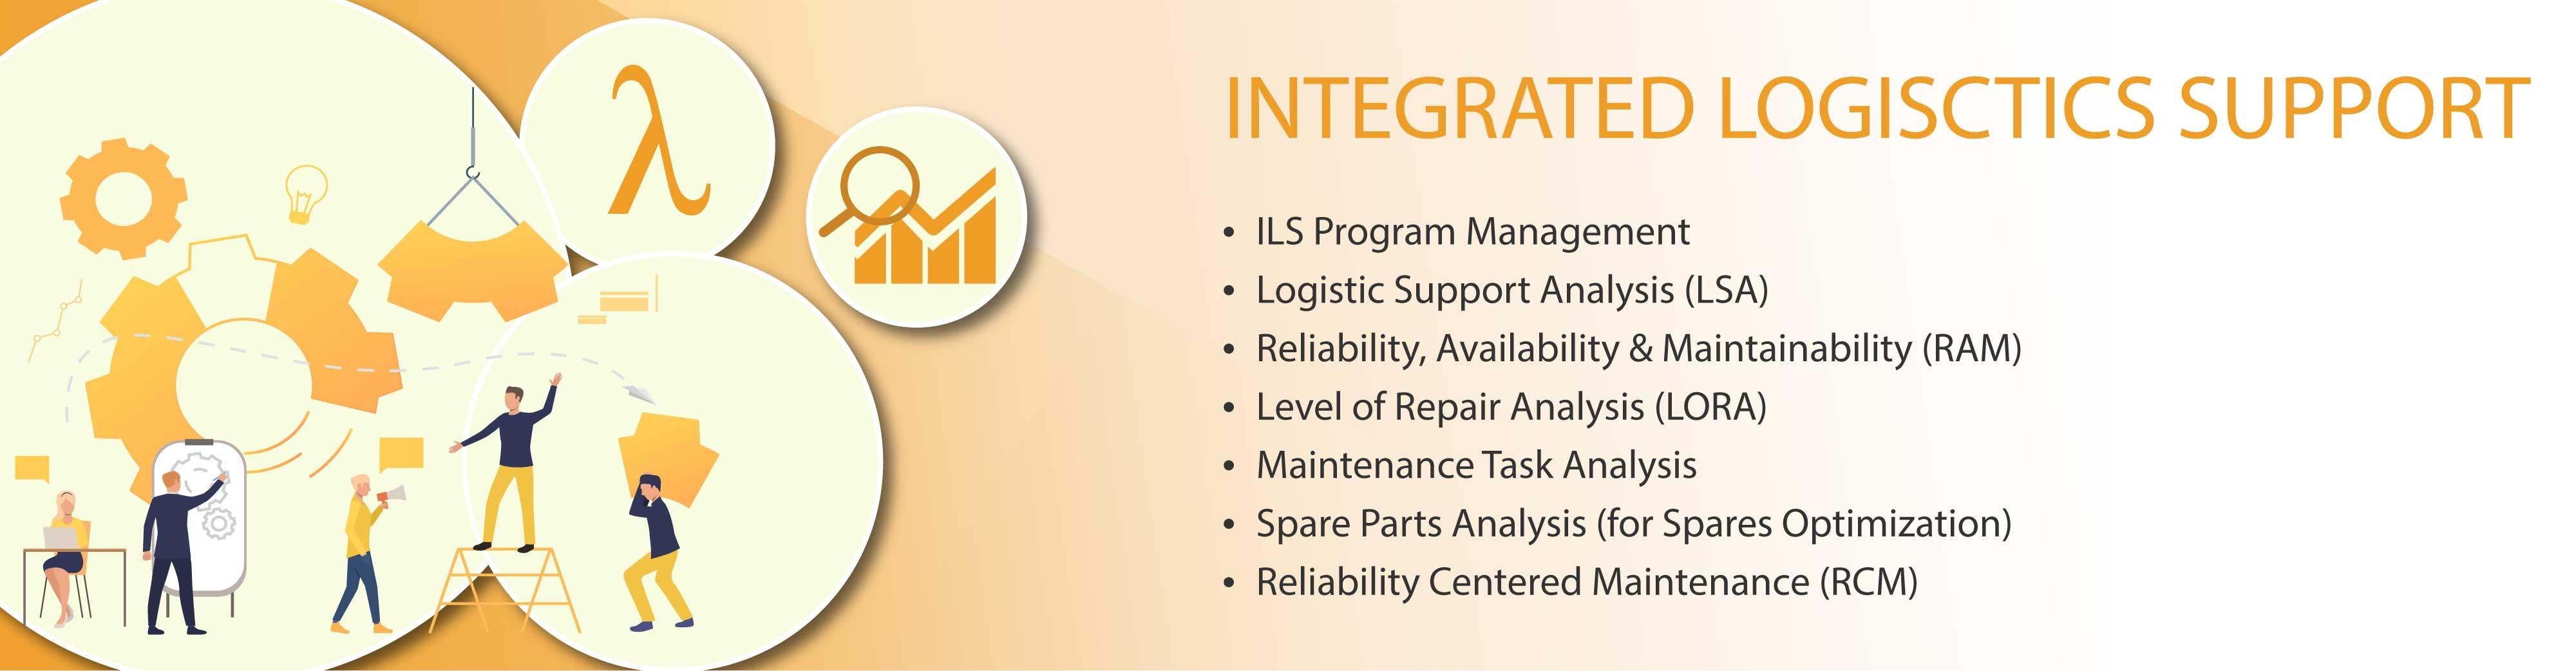 Integrated Logistic Support